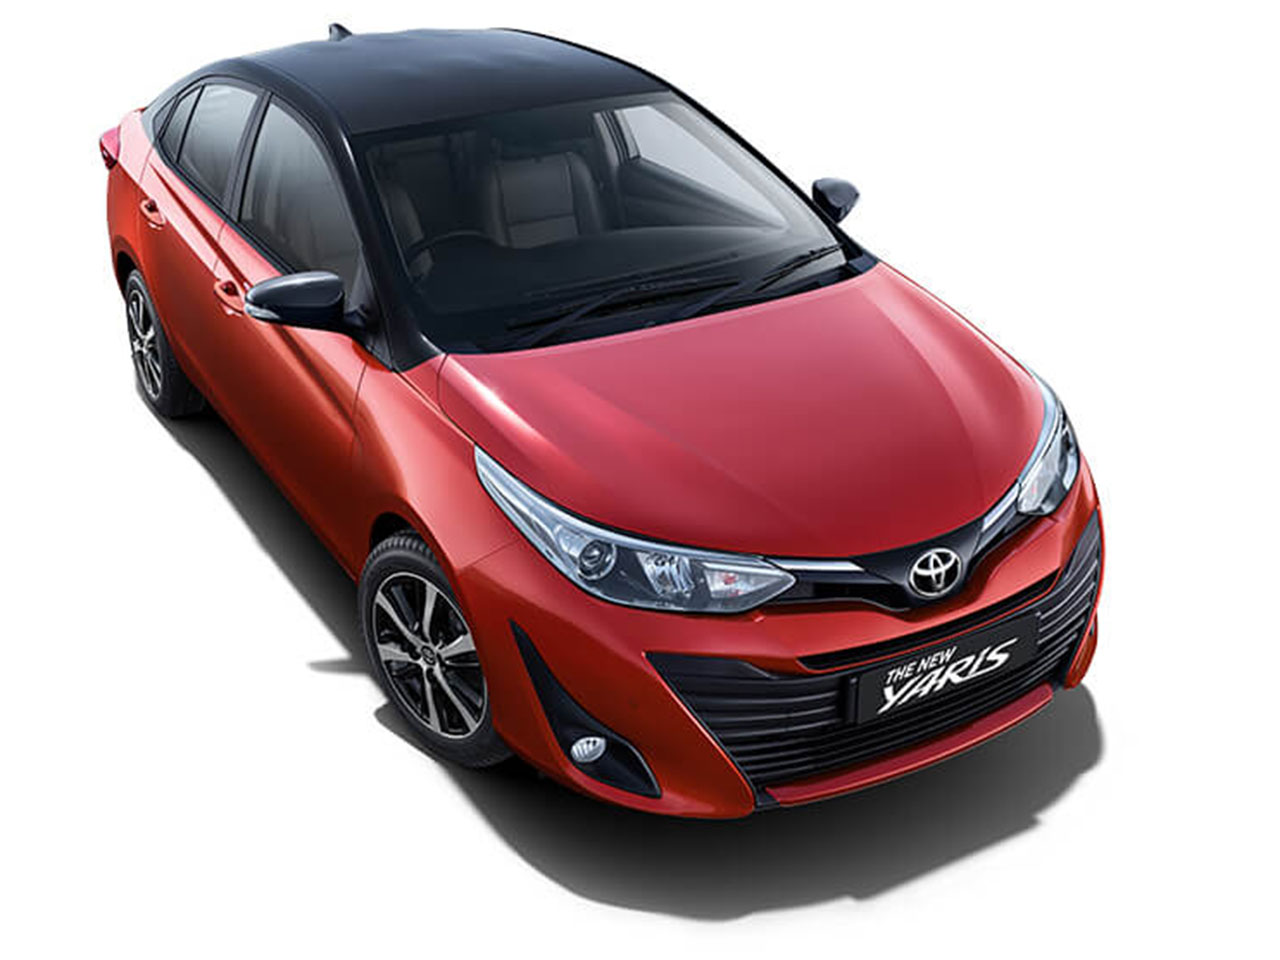 Toyota Yaris now available on Government eMarketplace at Rs 9.12 lakh